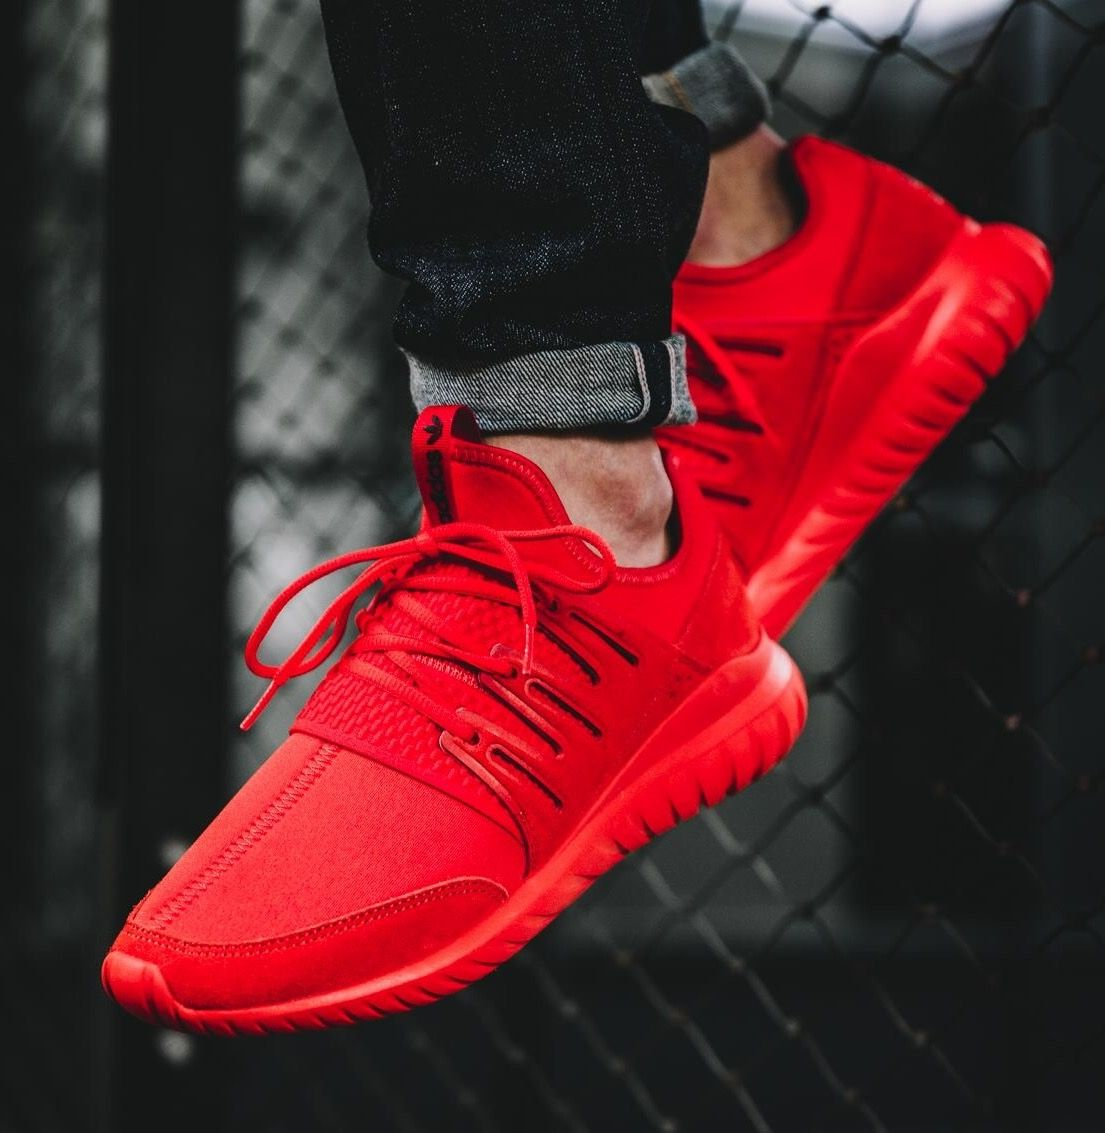 buy online 8bf22 367a4 adidas Originals Tubular Radial  All Red All Red Sneakers, Shoes Sneakers,  Sneakers Fashion